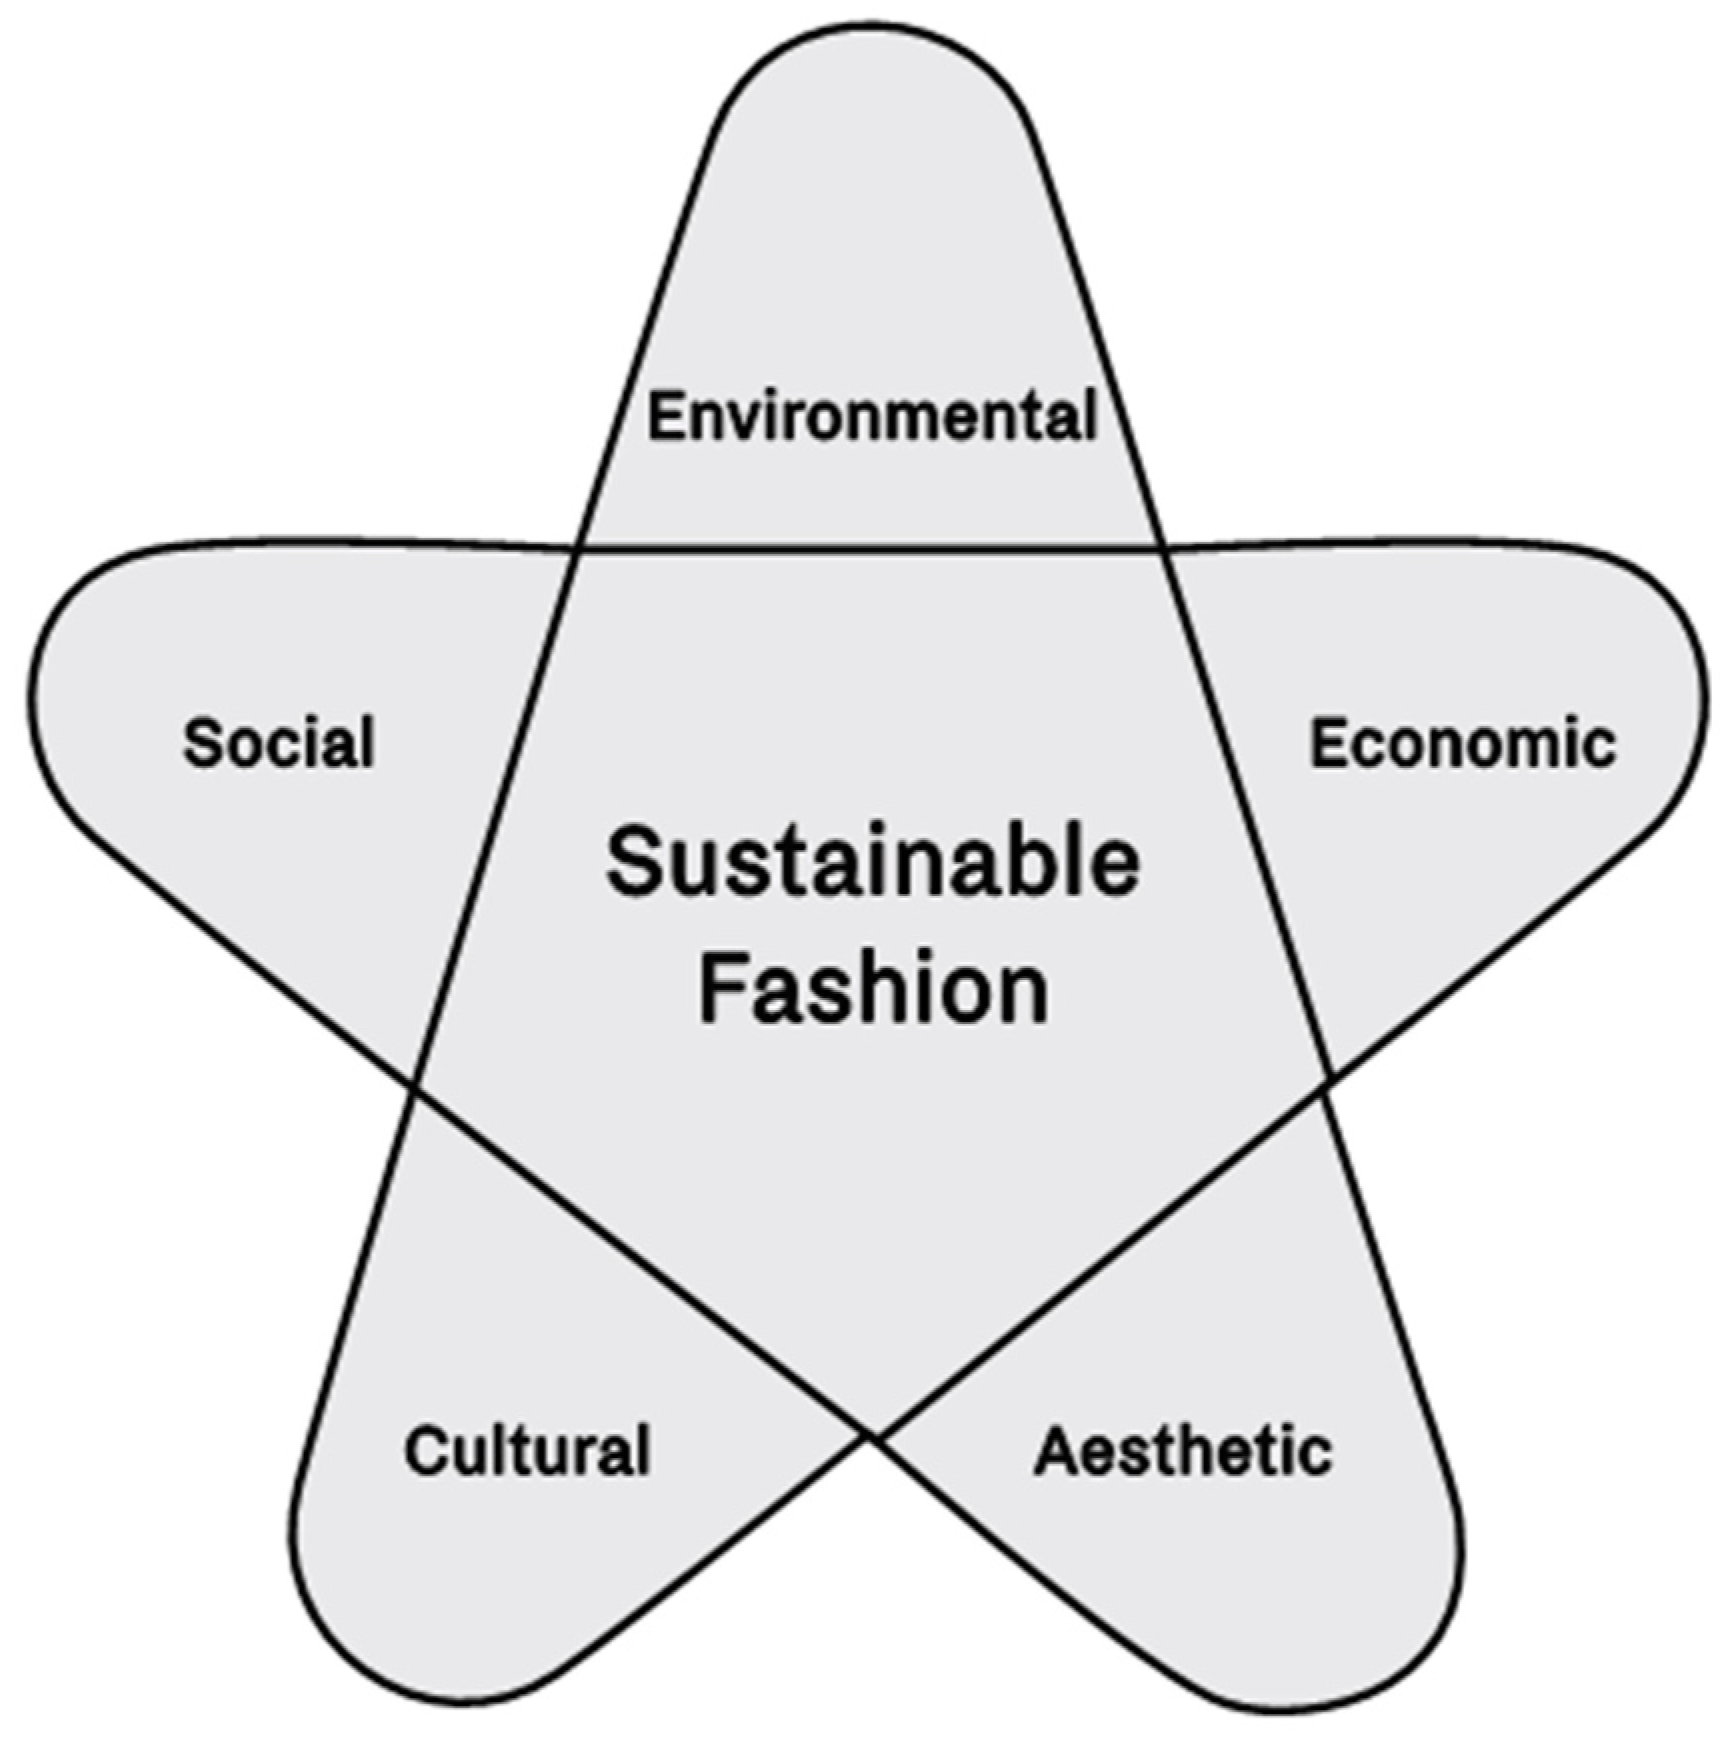 Sustainability Free Full Text Tools For Sustainable Fashion Design An Analysis Of Their Fitness For Purpose Html